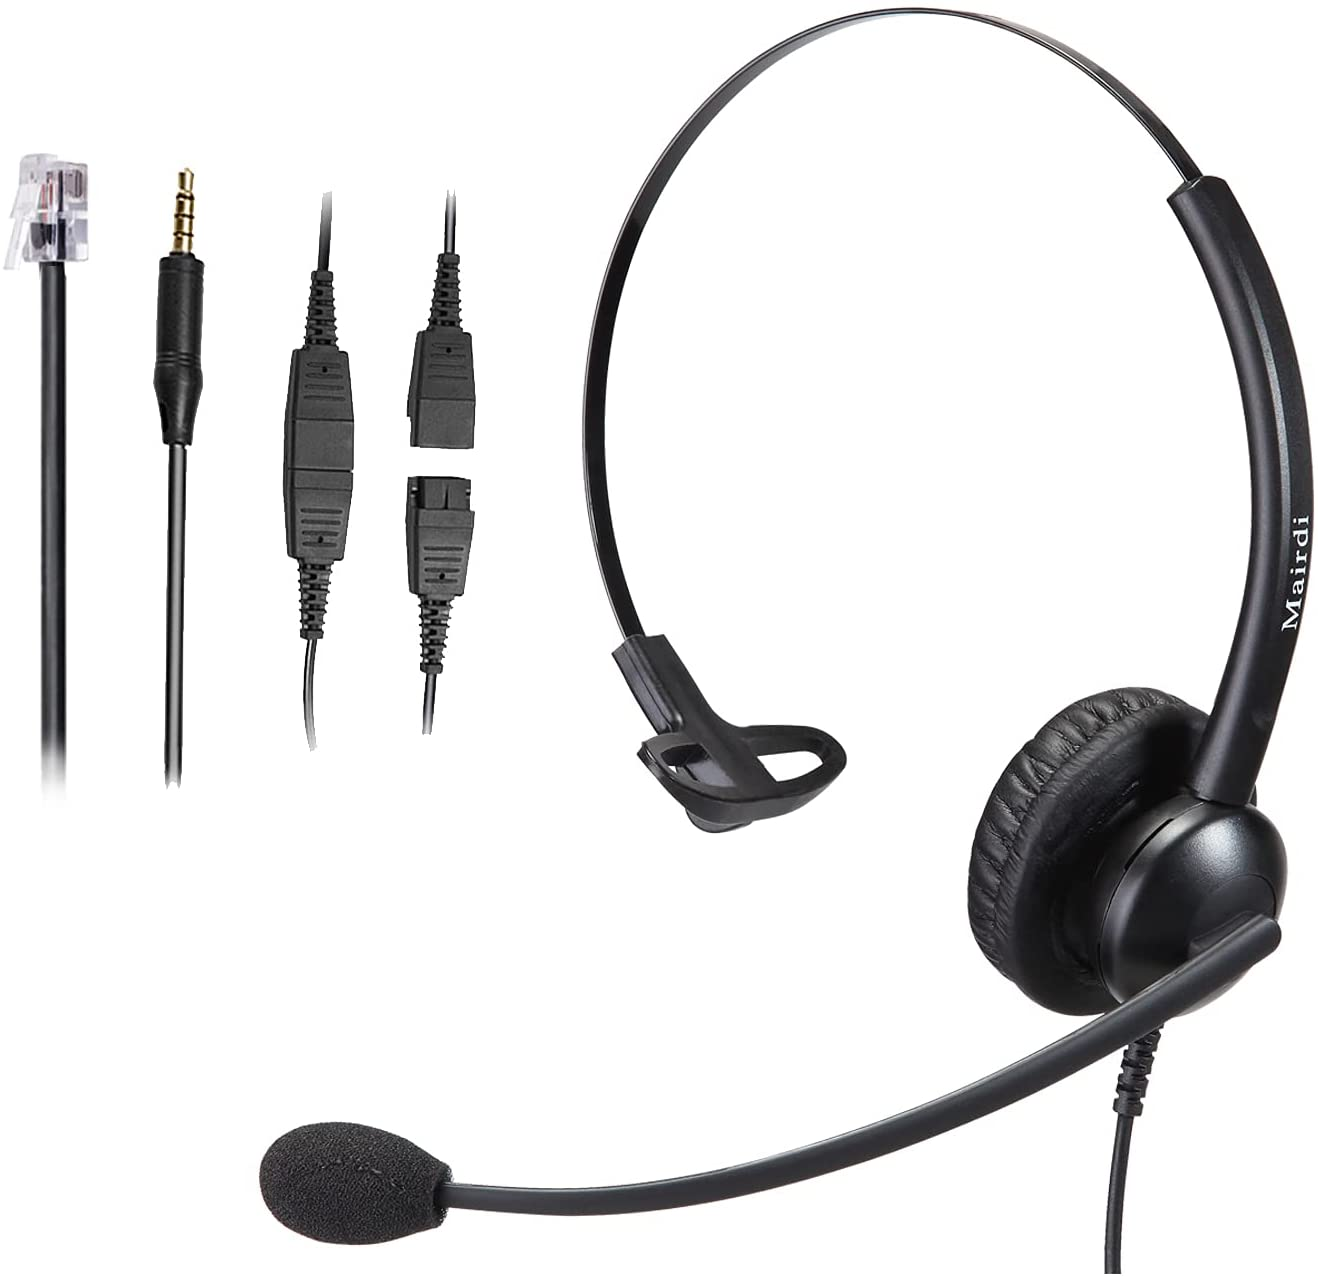 Telephone Headset with RJ9 Jack for Cisco Phone, Including 3.5mm Connector for Cell Phone PC Laptop, Office Headset with Microphone Noise Cancelling for Call Center Landline Deskphone